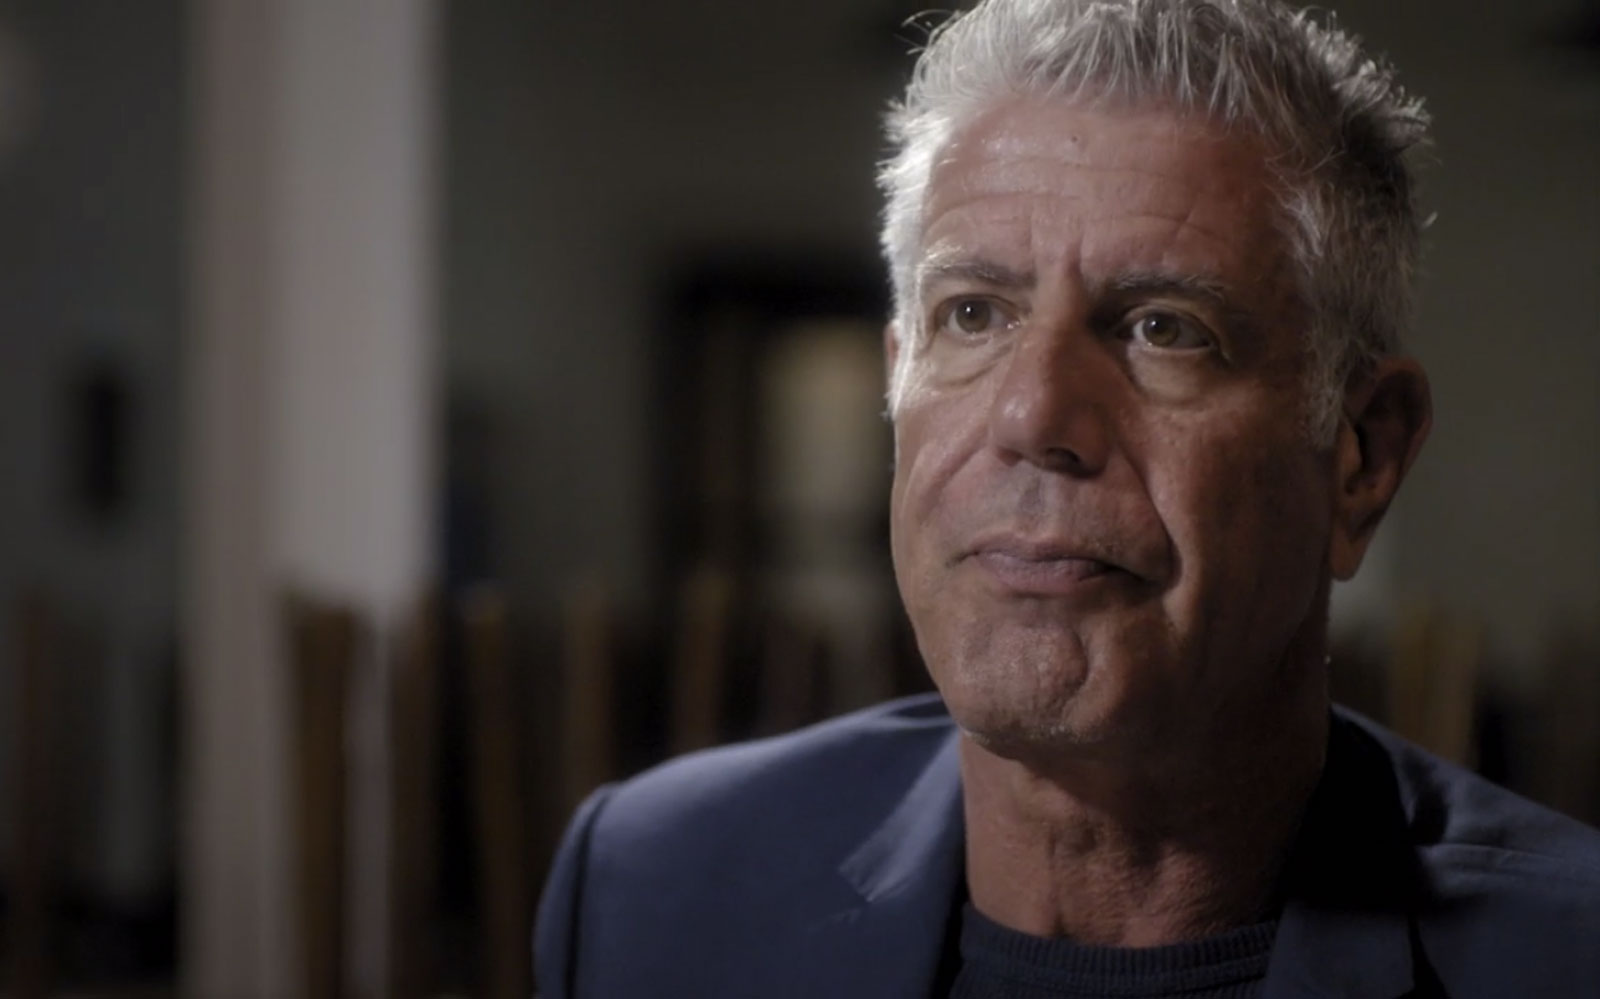 Anthony Bourdain in Post-Brexit London